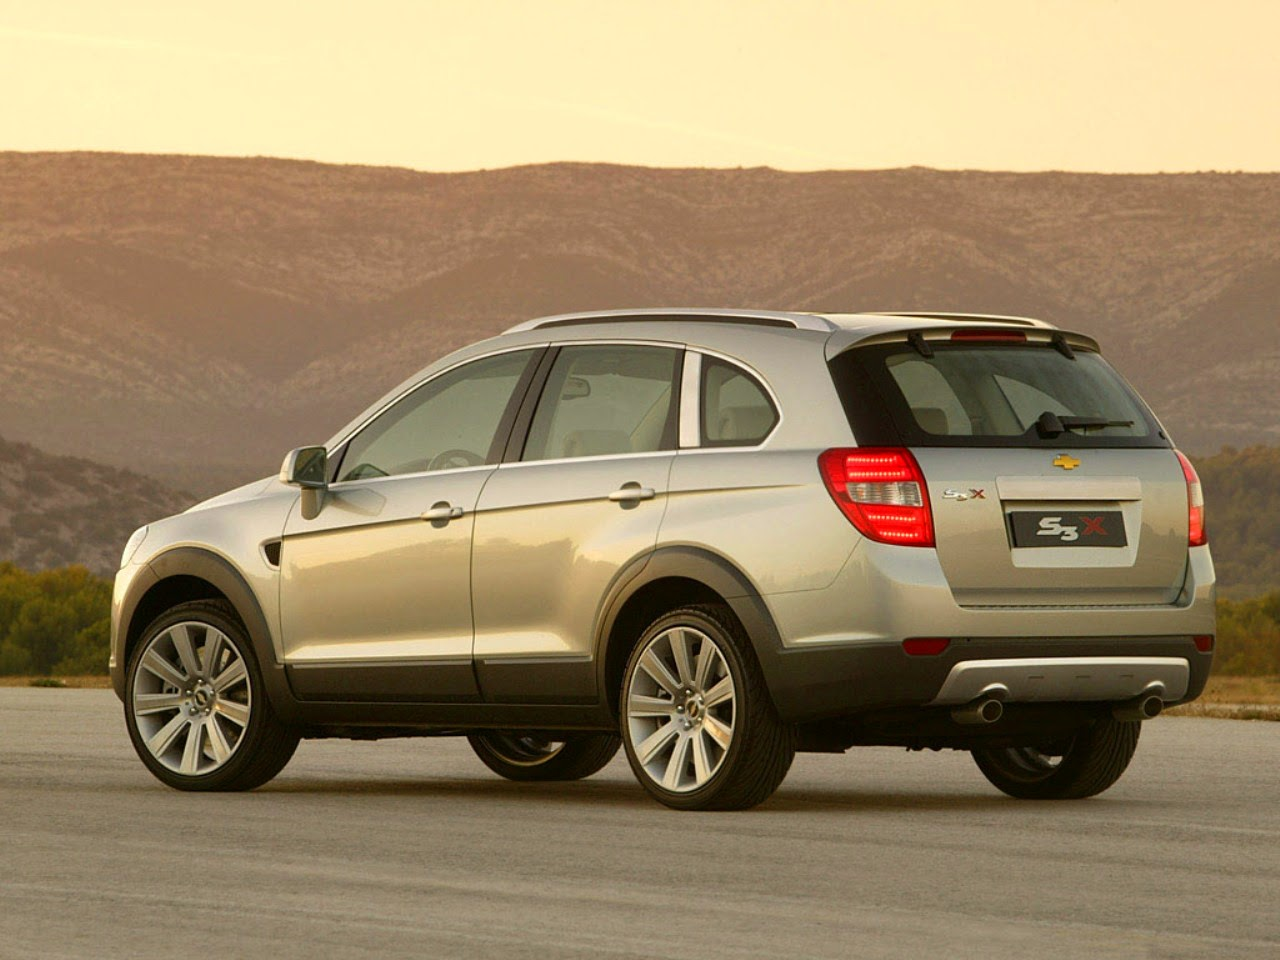 2014 chevrolet captiva car pictures 2017 2018 cars news. Cars Review. Best American Auto & Cars Review